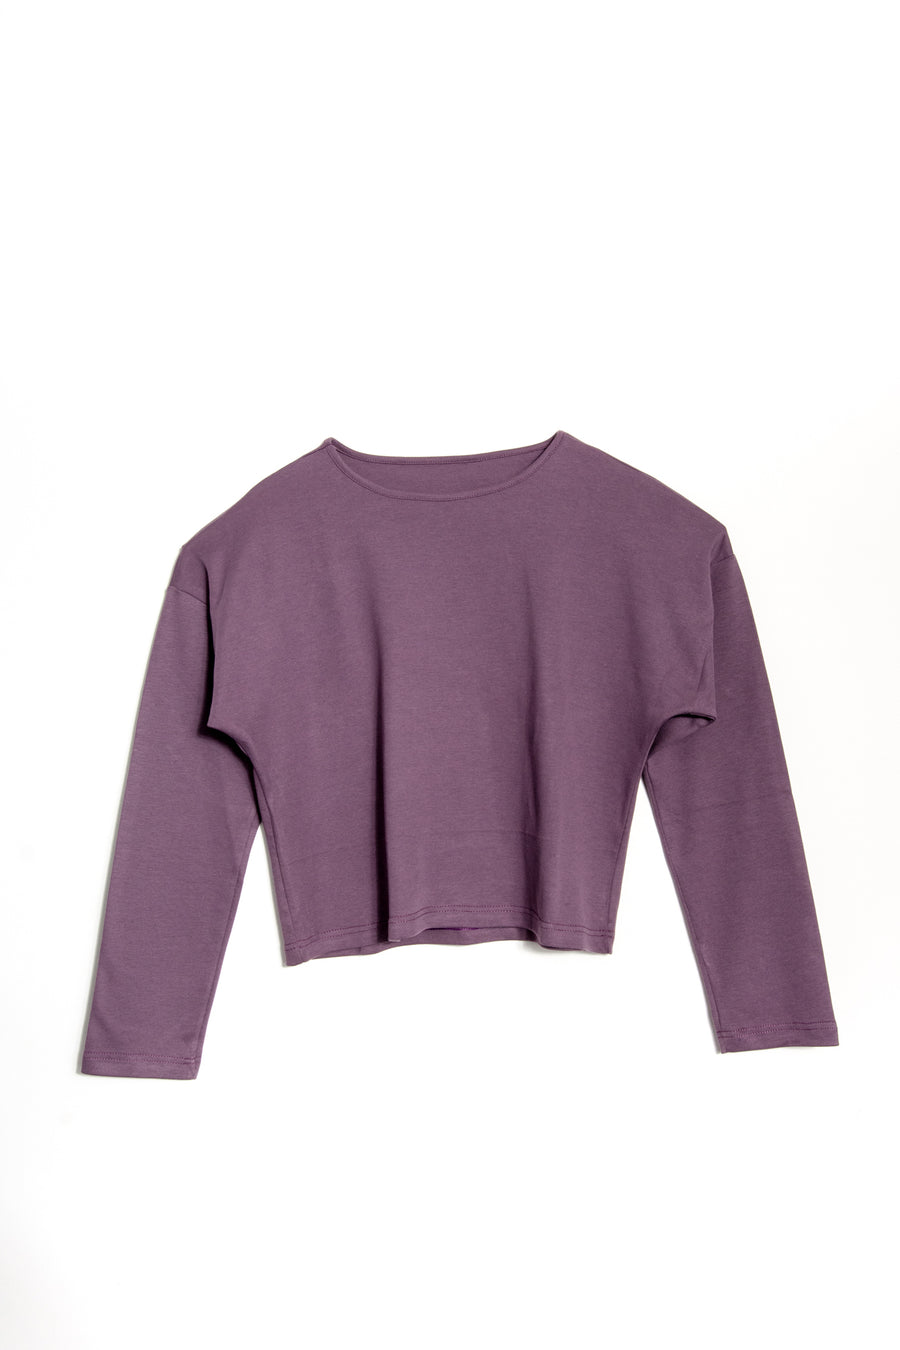 Be Kind - Basic Top Real Grape